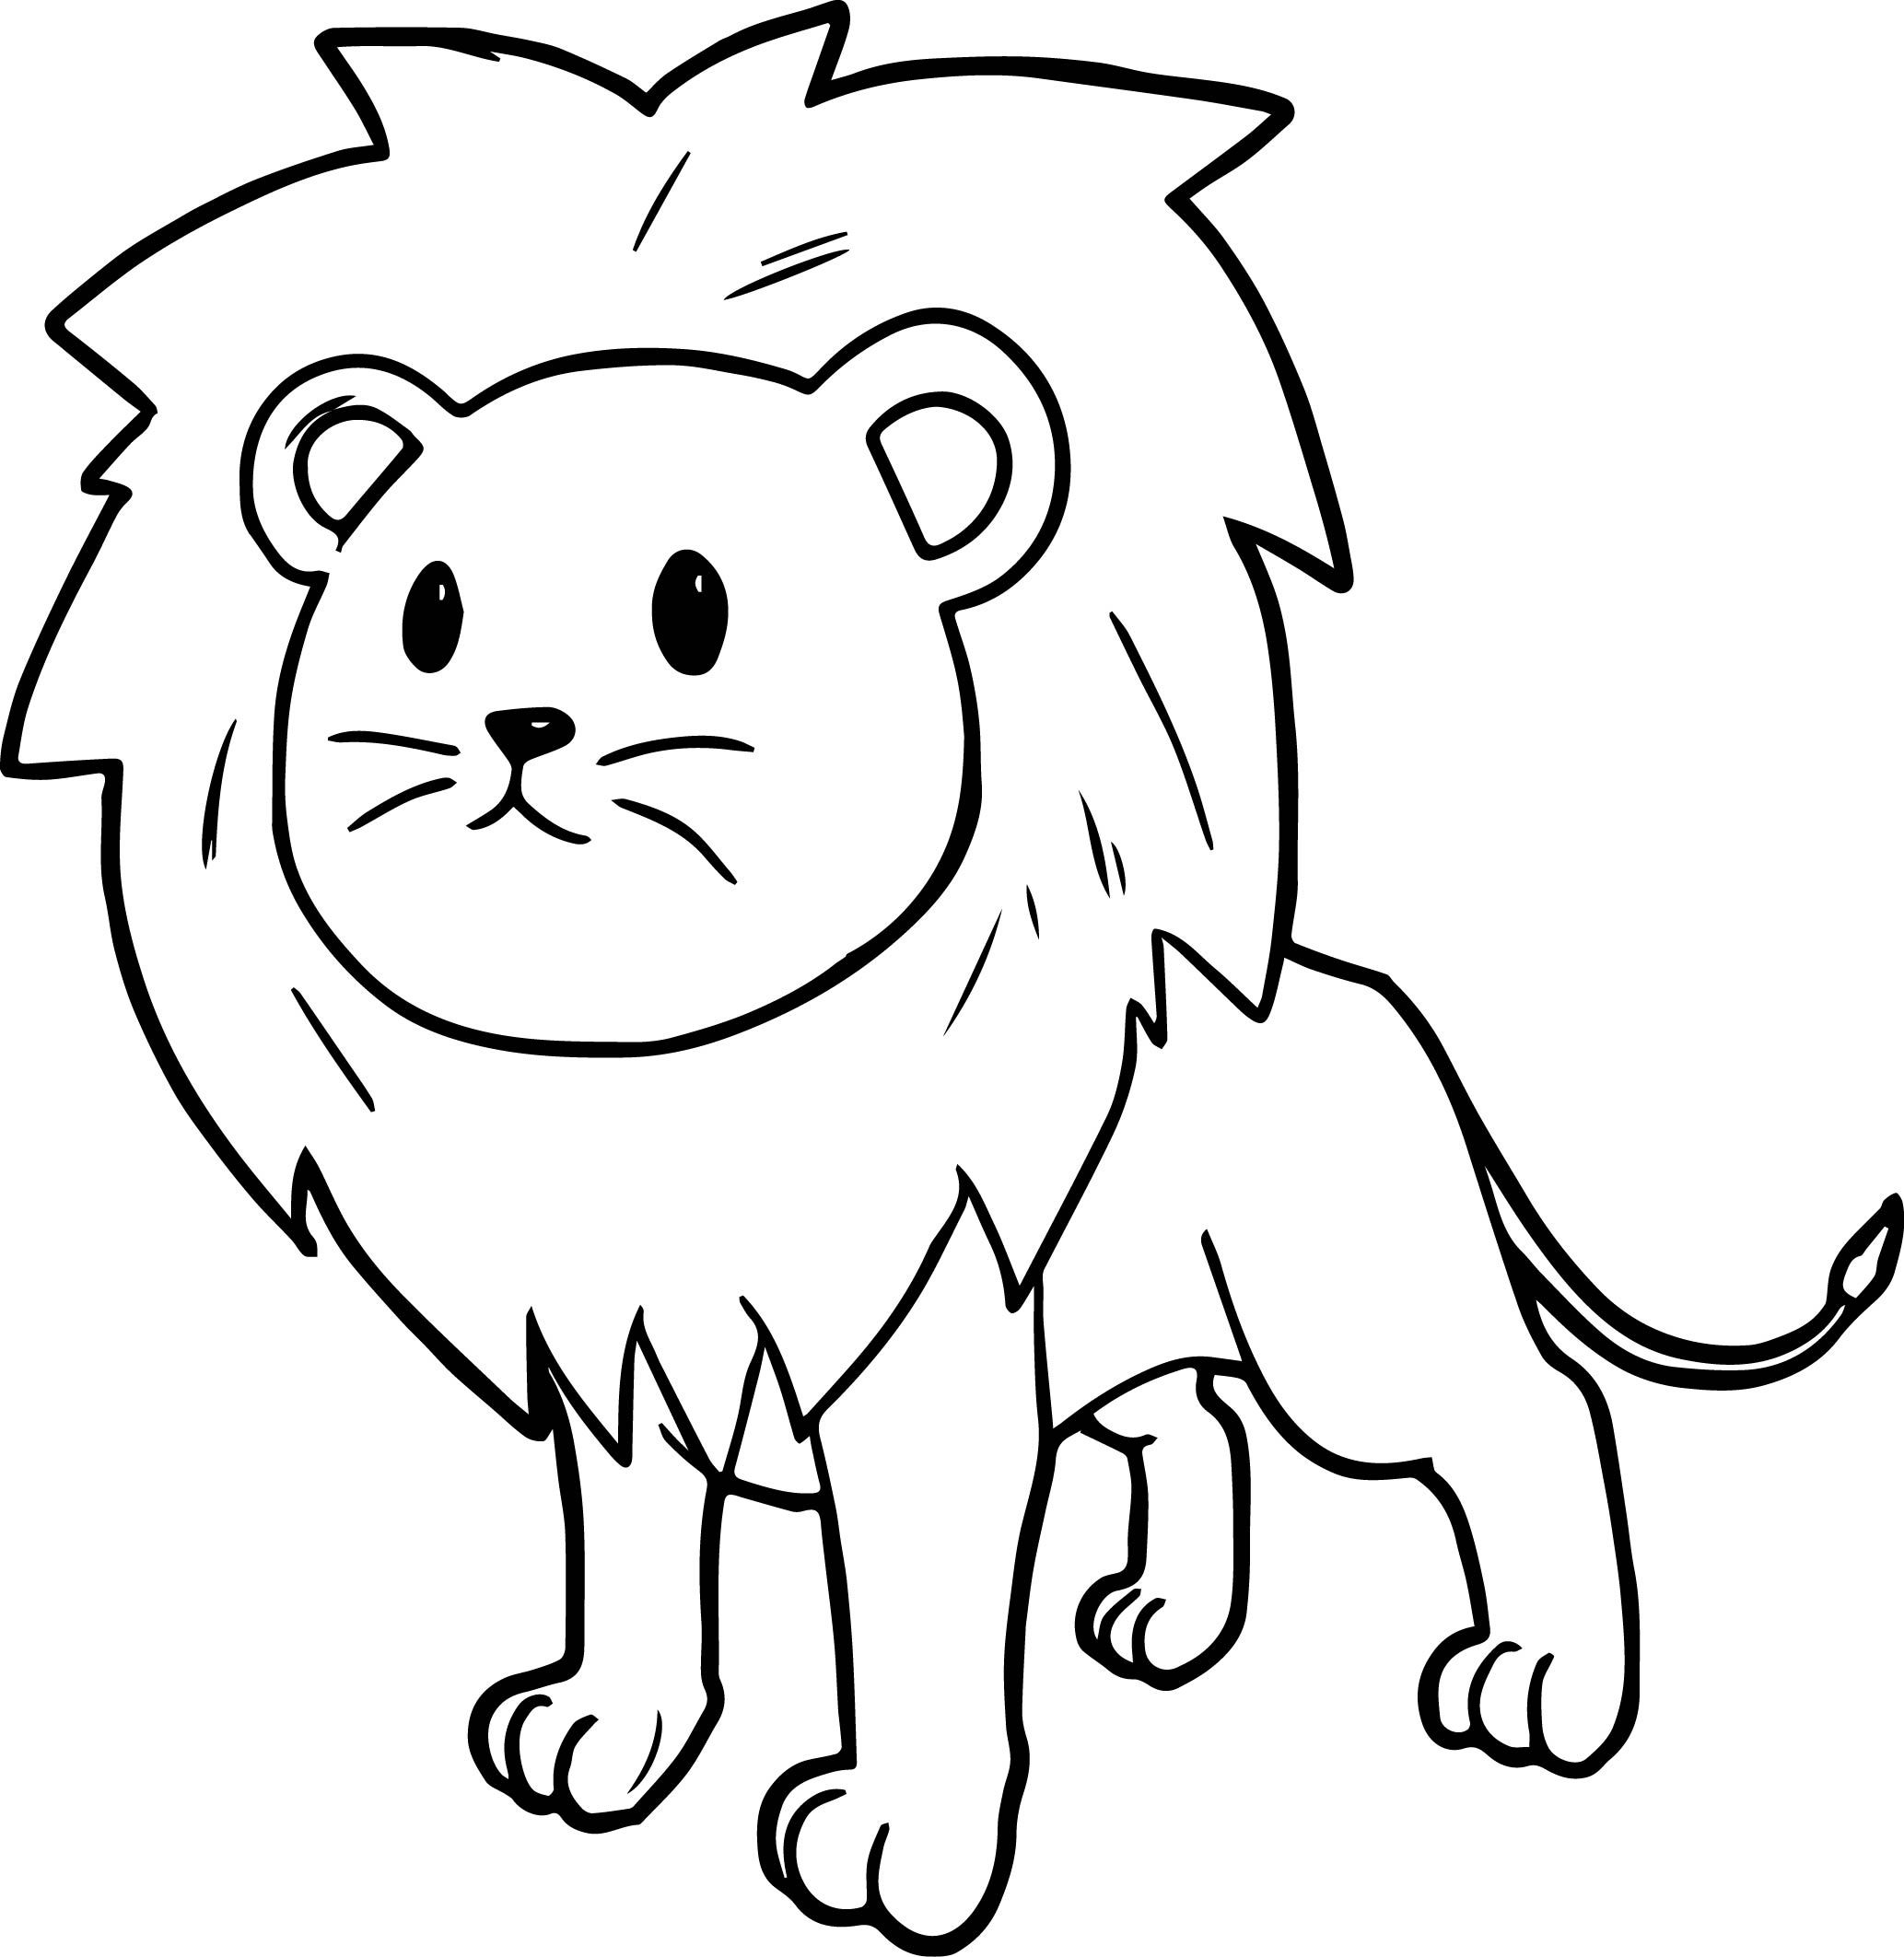 Nice Cute Cartoon Comic Lion Coloring Page Lion Coloring Pages Cartoon Lion Cartoon Coloring Pages